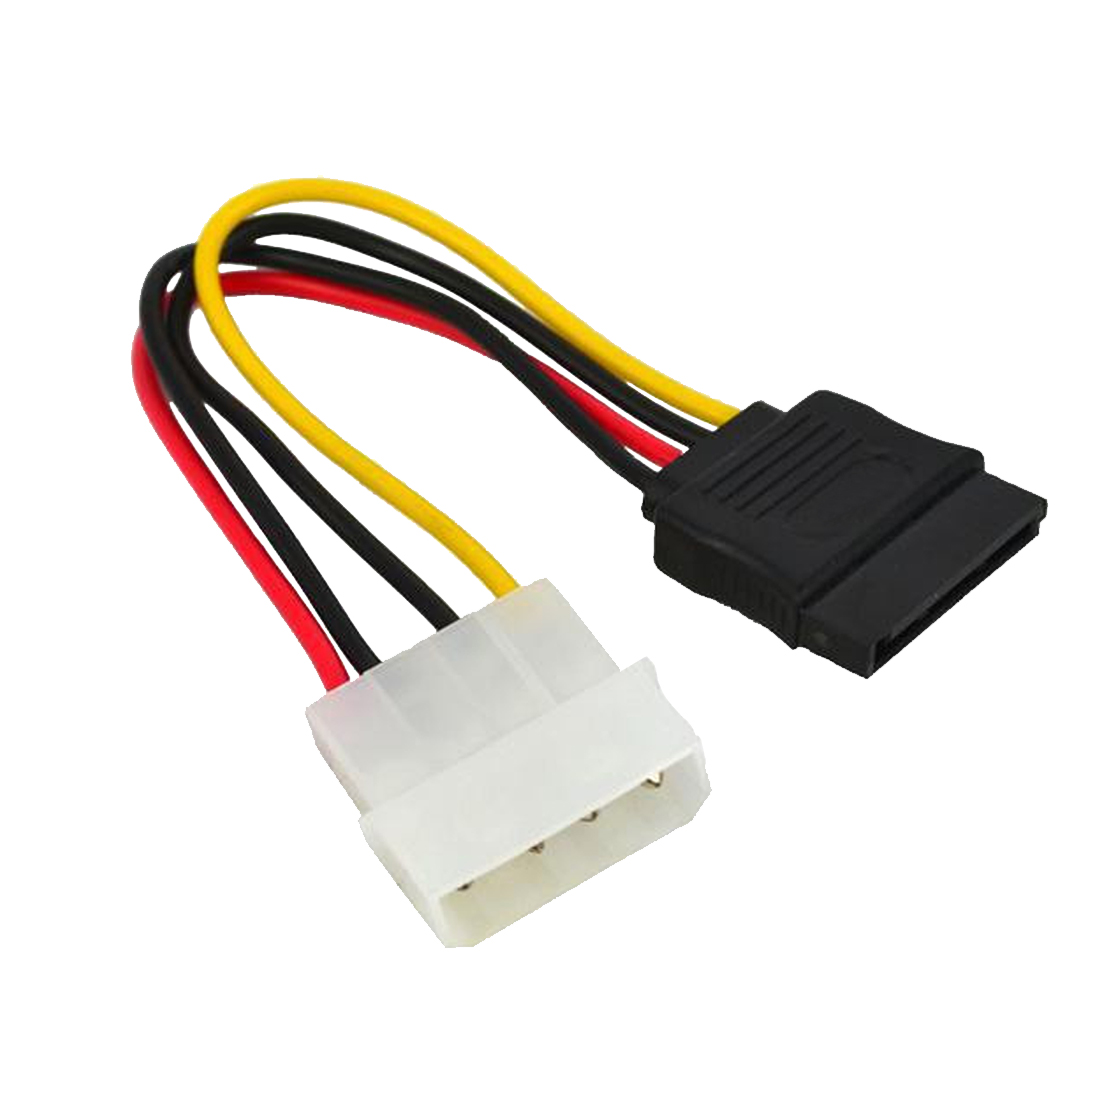 NOYOKERE Nice 1pcs Serial ATA SATA 4 Pin IDE To 15 Pin HDD Power Adapter Cable Hard Drive Adapter Male To Female Cable